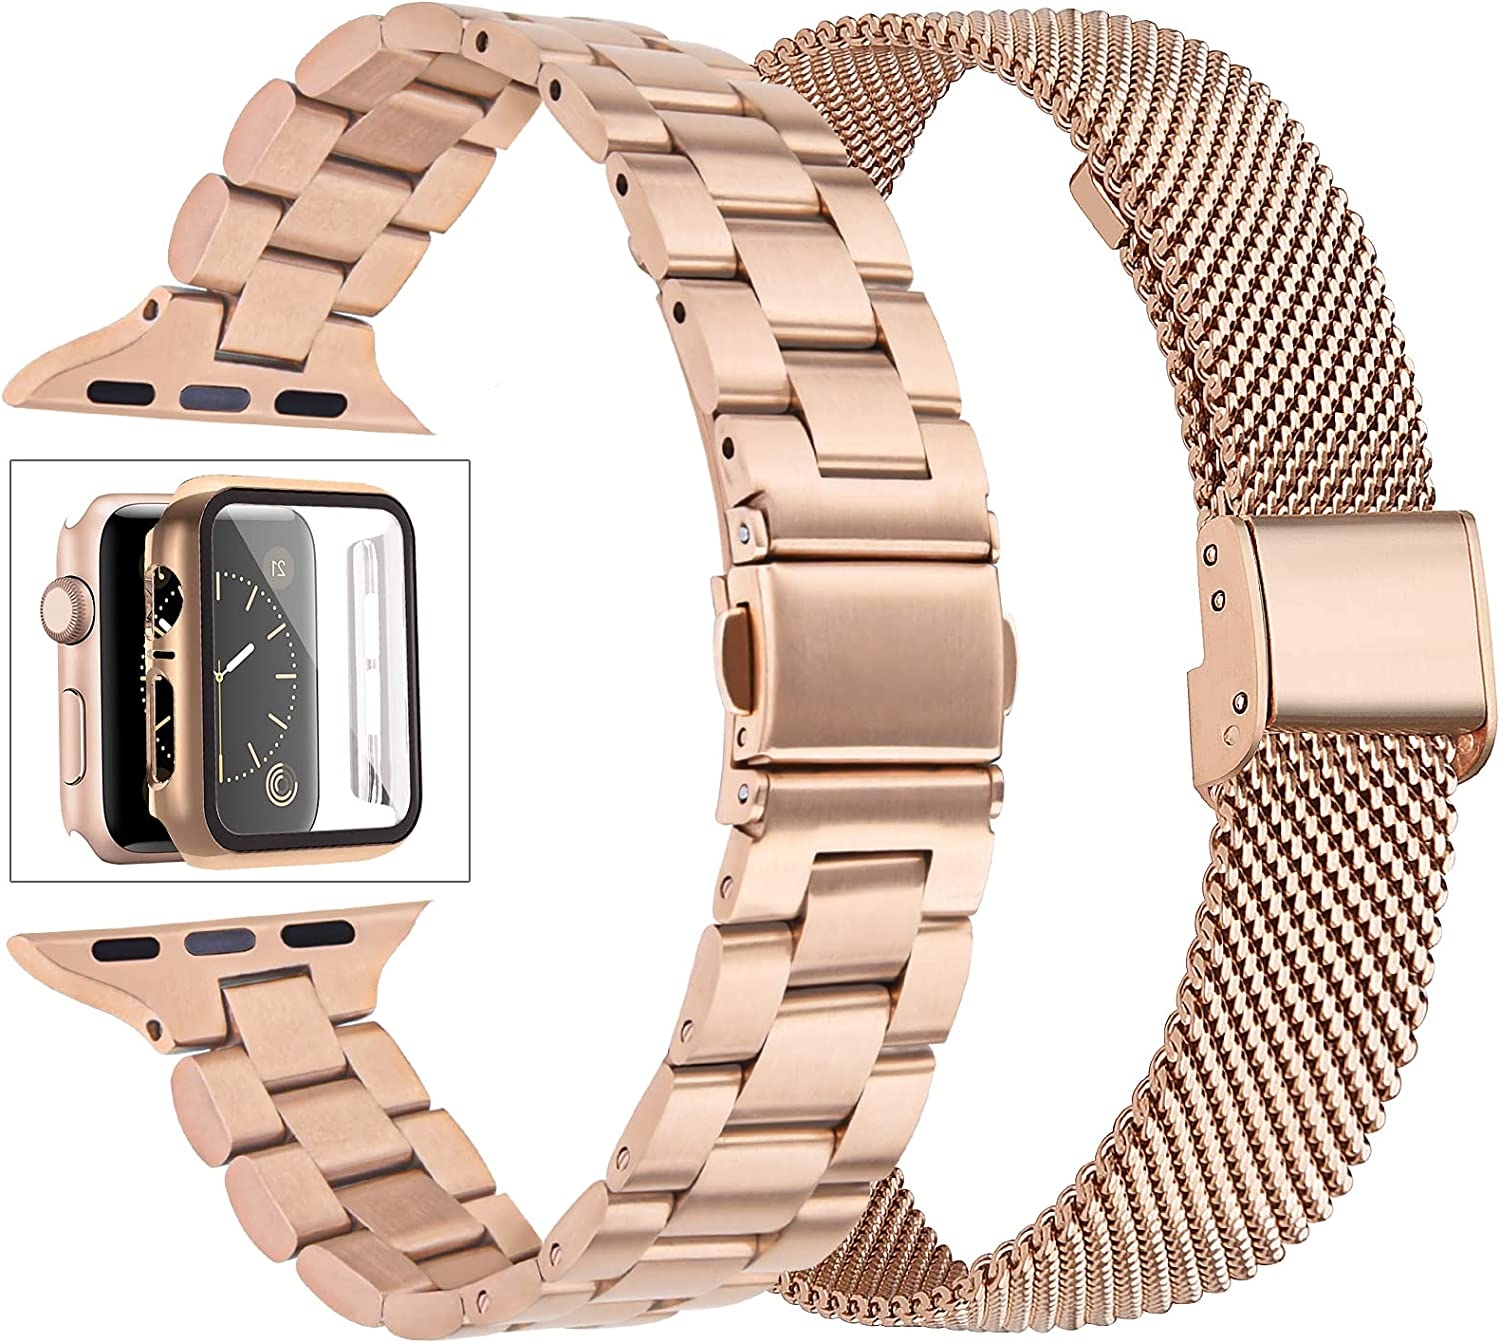 2 Pack Compatible with 40mm Apple Watch Band, iWatch Bands 40mm Series 6/5/4/SE for Women, CAGOS Thin Stainless Steel iPhone Watch Strap + Mesh Loop with Screen Protector Cover (Rose Gold, 40mm)